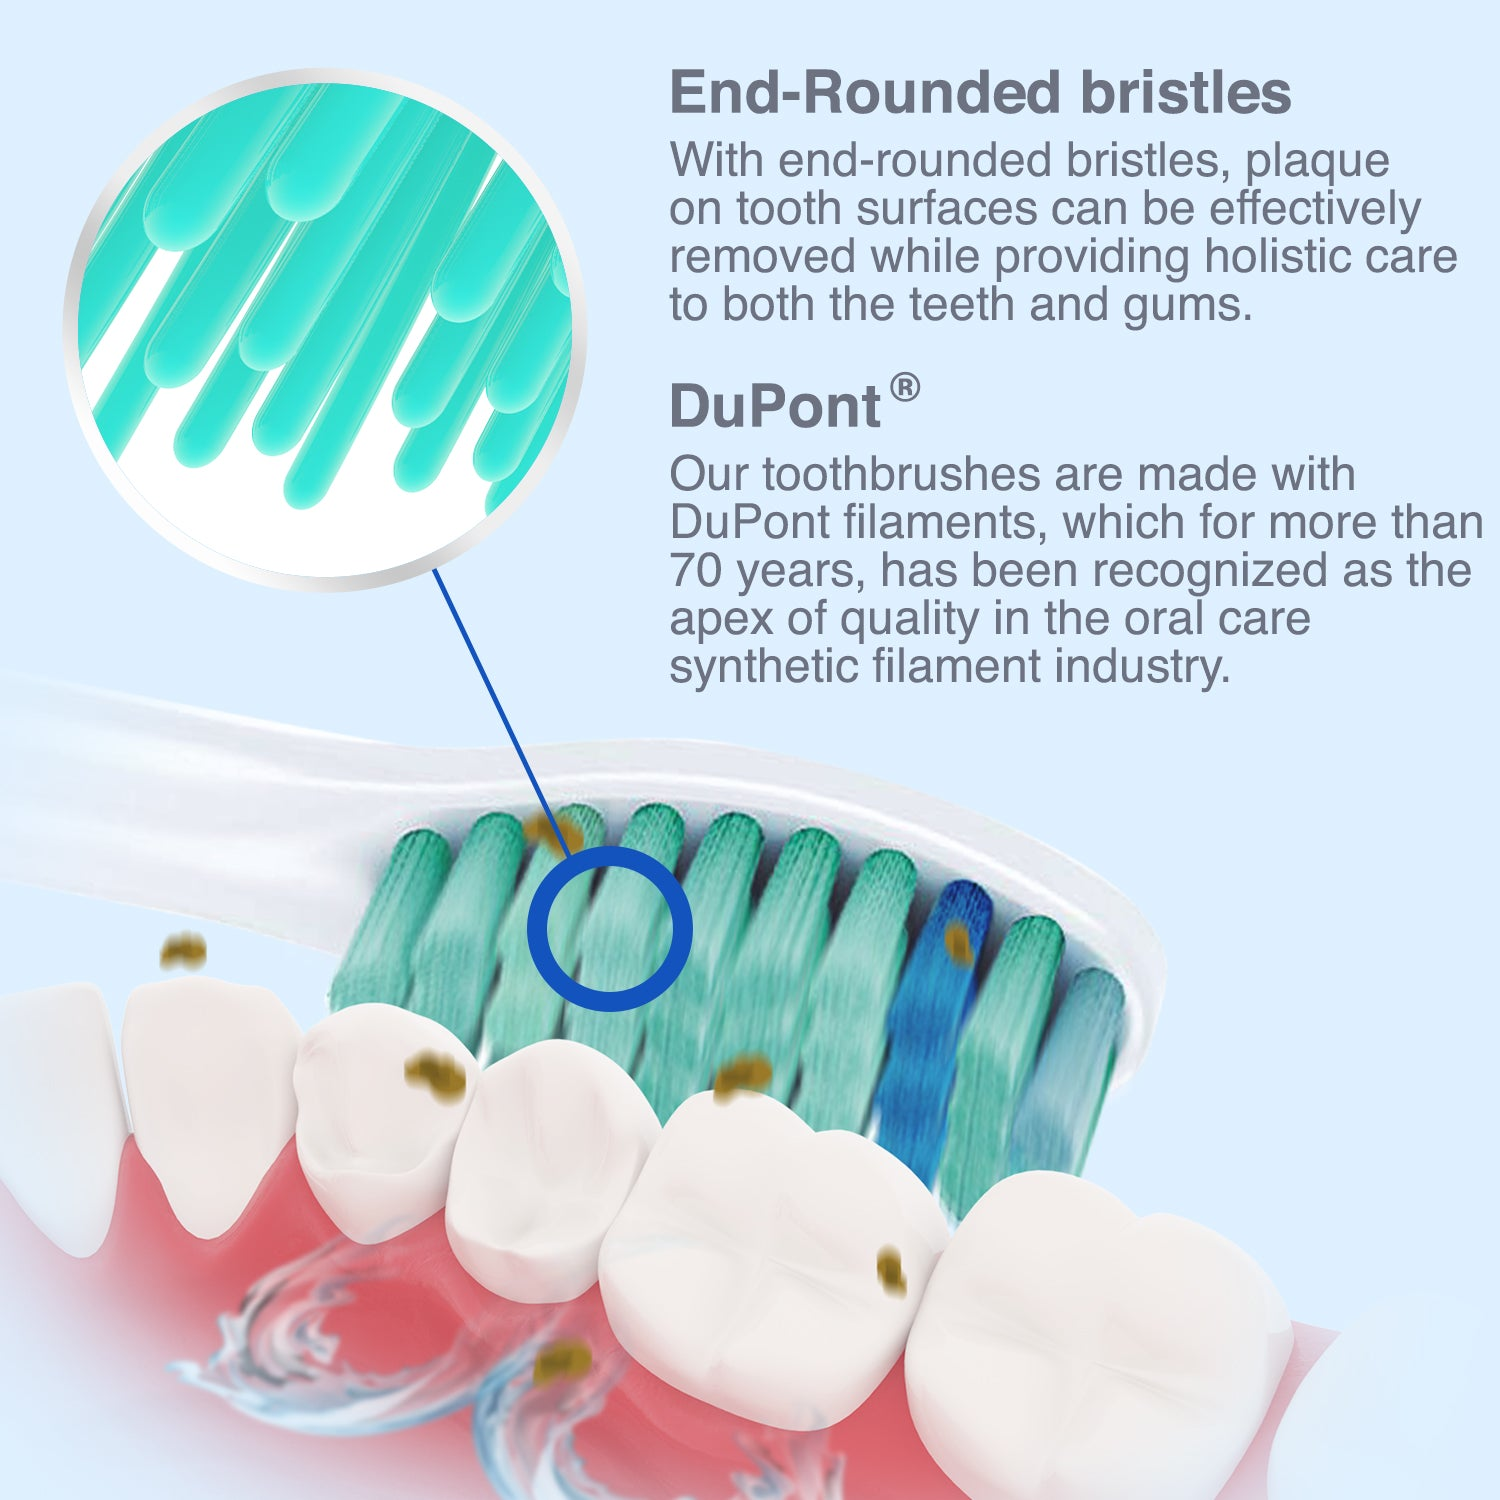 Brushmo Replacement Toothbrush Heads Compatible With Sonicare E-Series HX7022, 6 Pack, Fits Advance, CleanCare, Elite, Essence And Xtreme Brush Handles